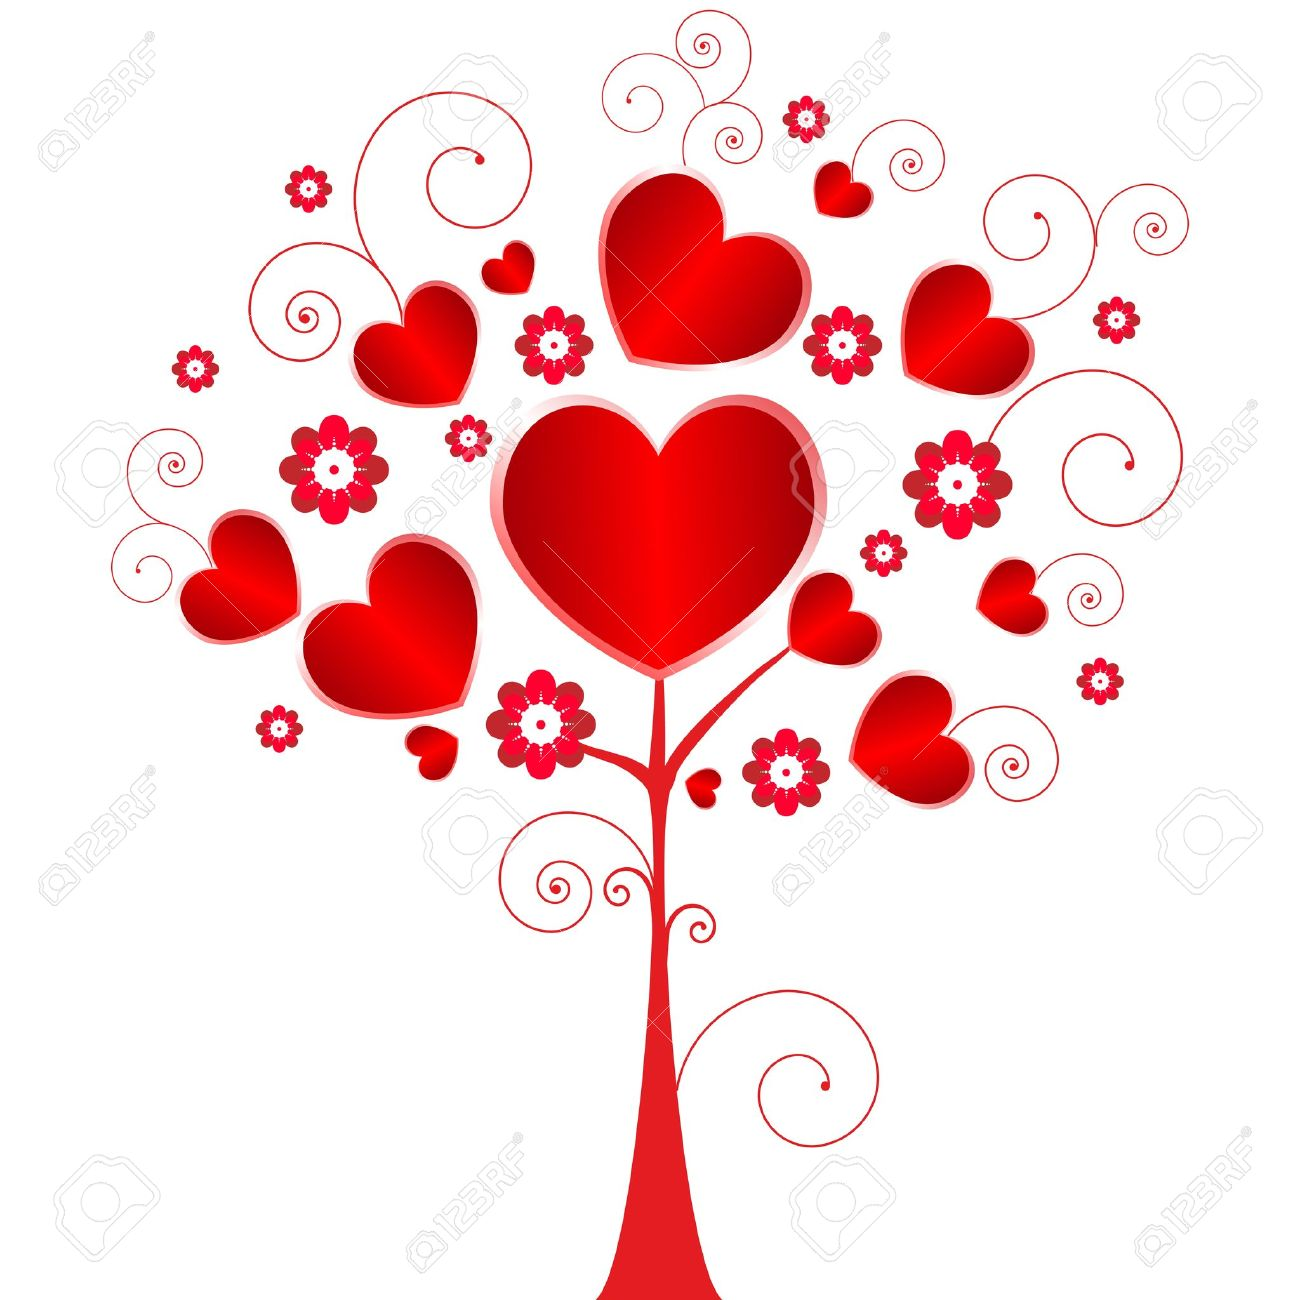 Valentine Day Tree With Flowers And Hearts. Royalty Free Cliparts ...